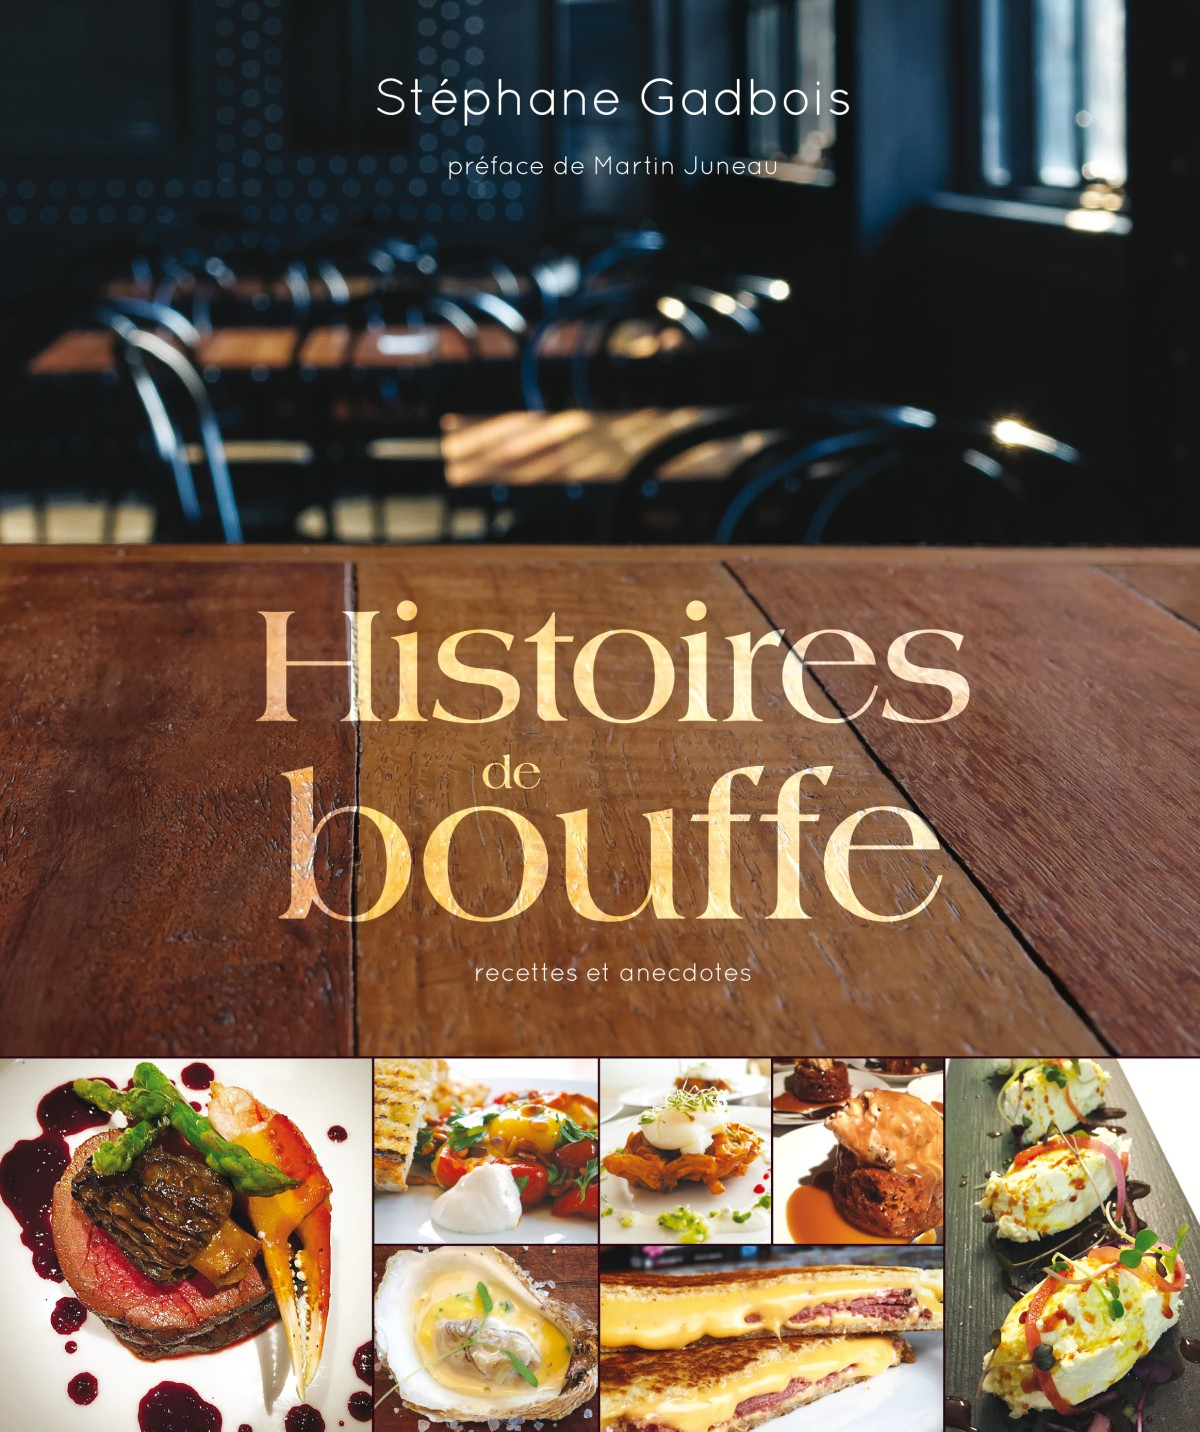 Histoires de bouffe